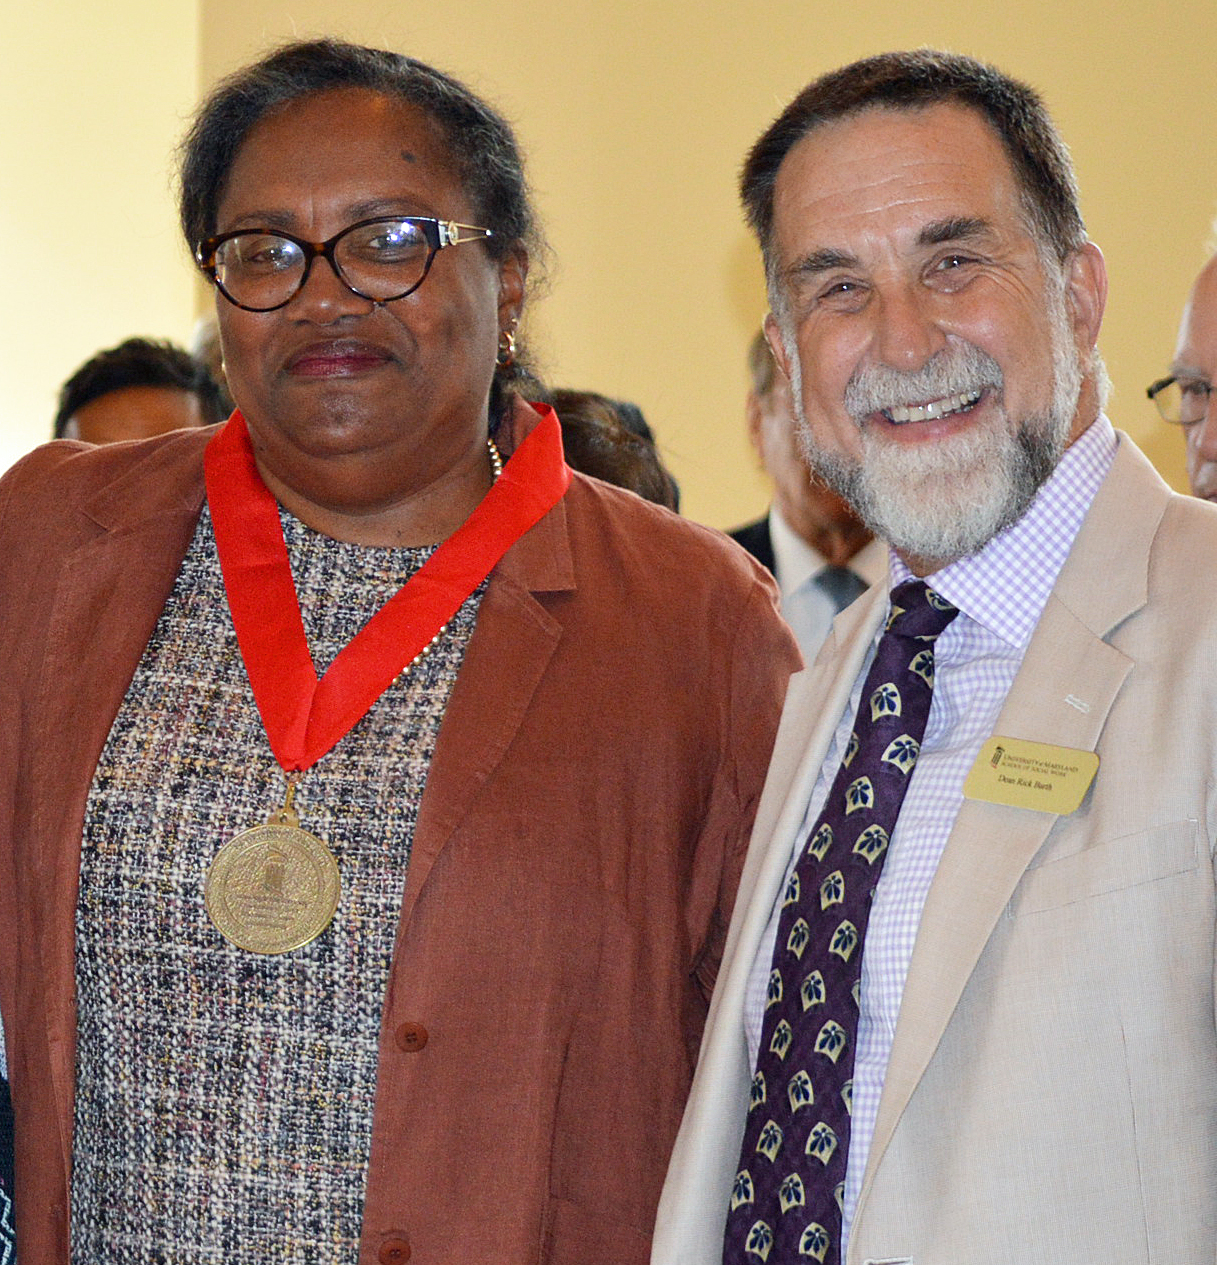 Brenda Jones Harden, PhD, MSW, and Richard P. Barth, PhD, MSW, dean of the University of Maryland School of Social Work.